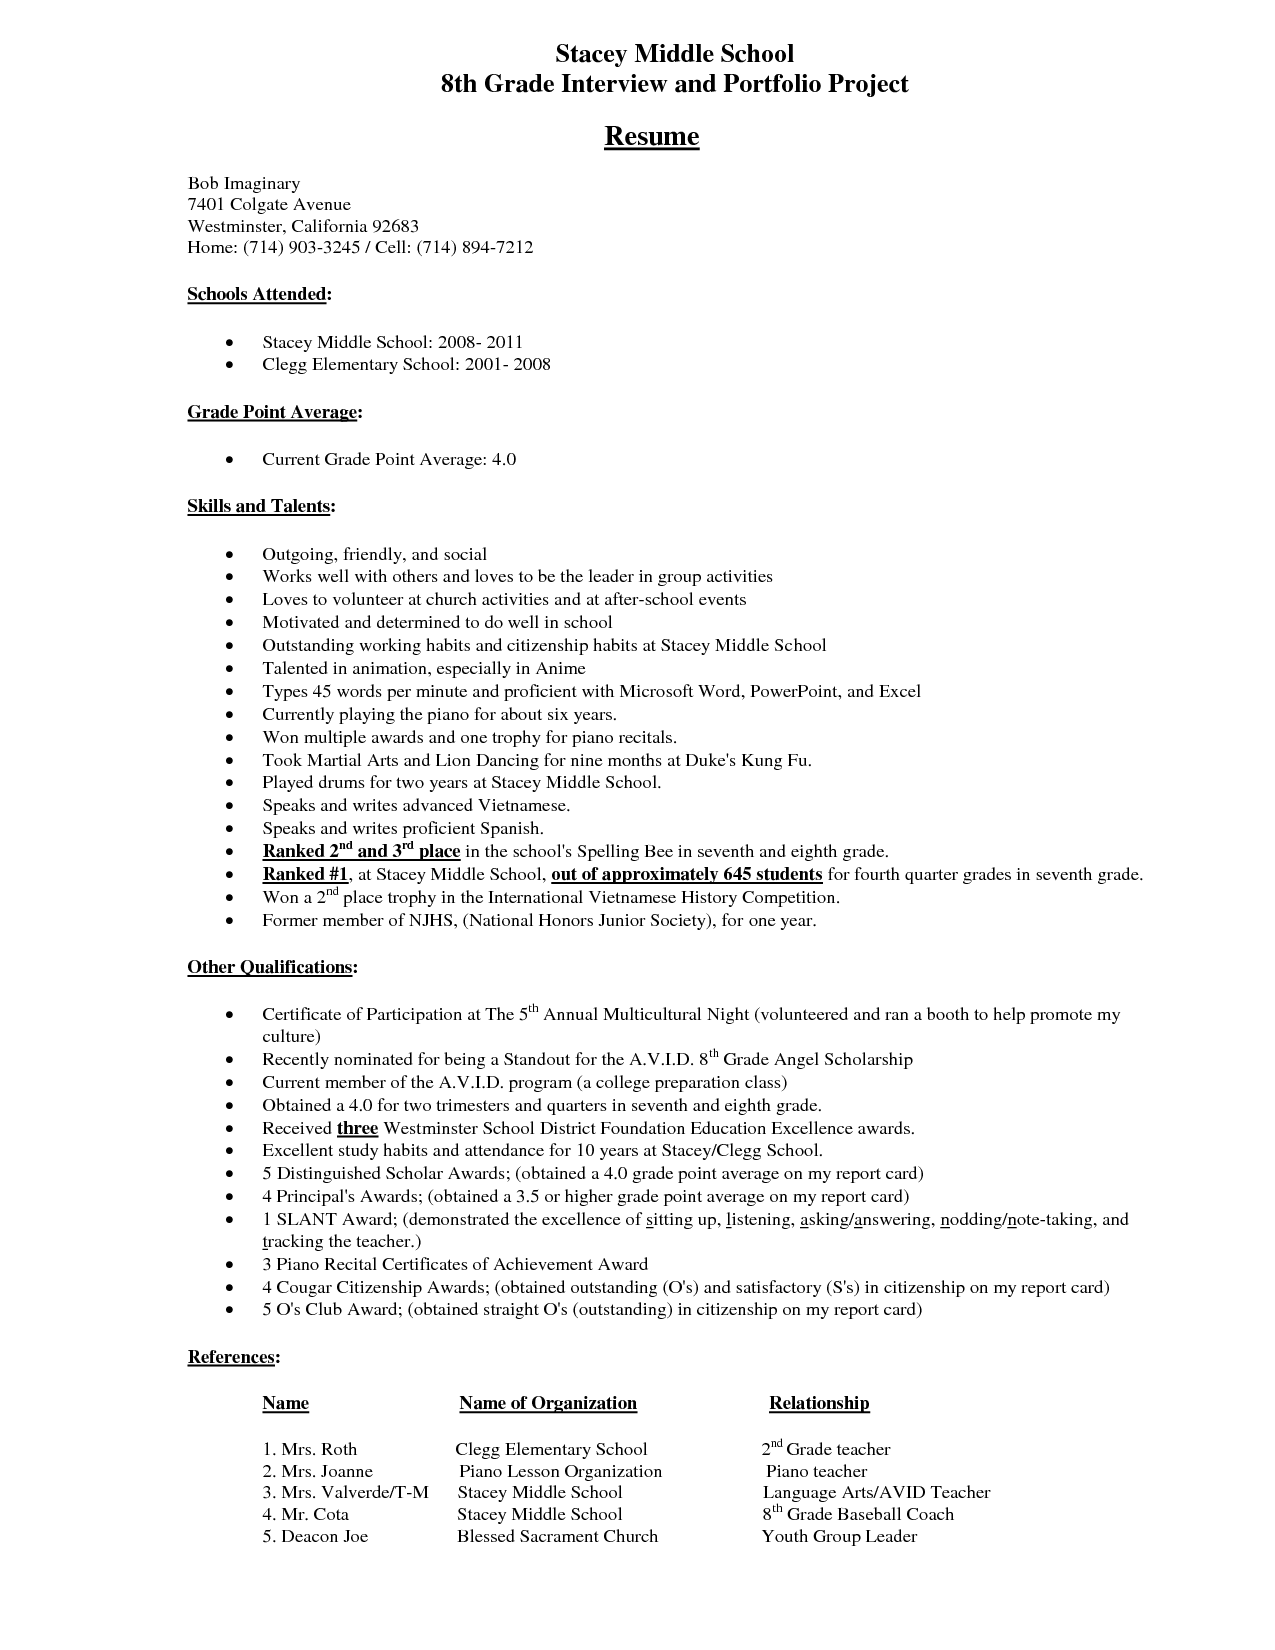 middle school student resume example | stacey middle school 8th